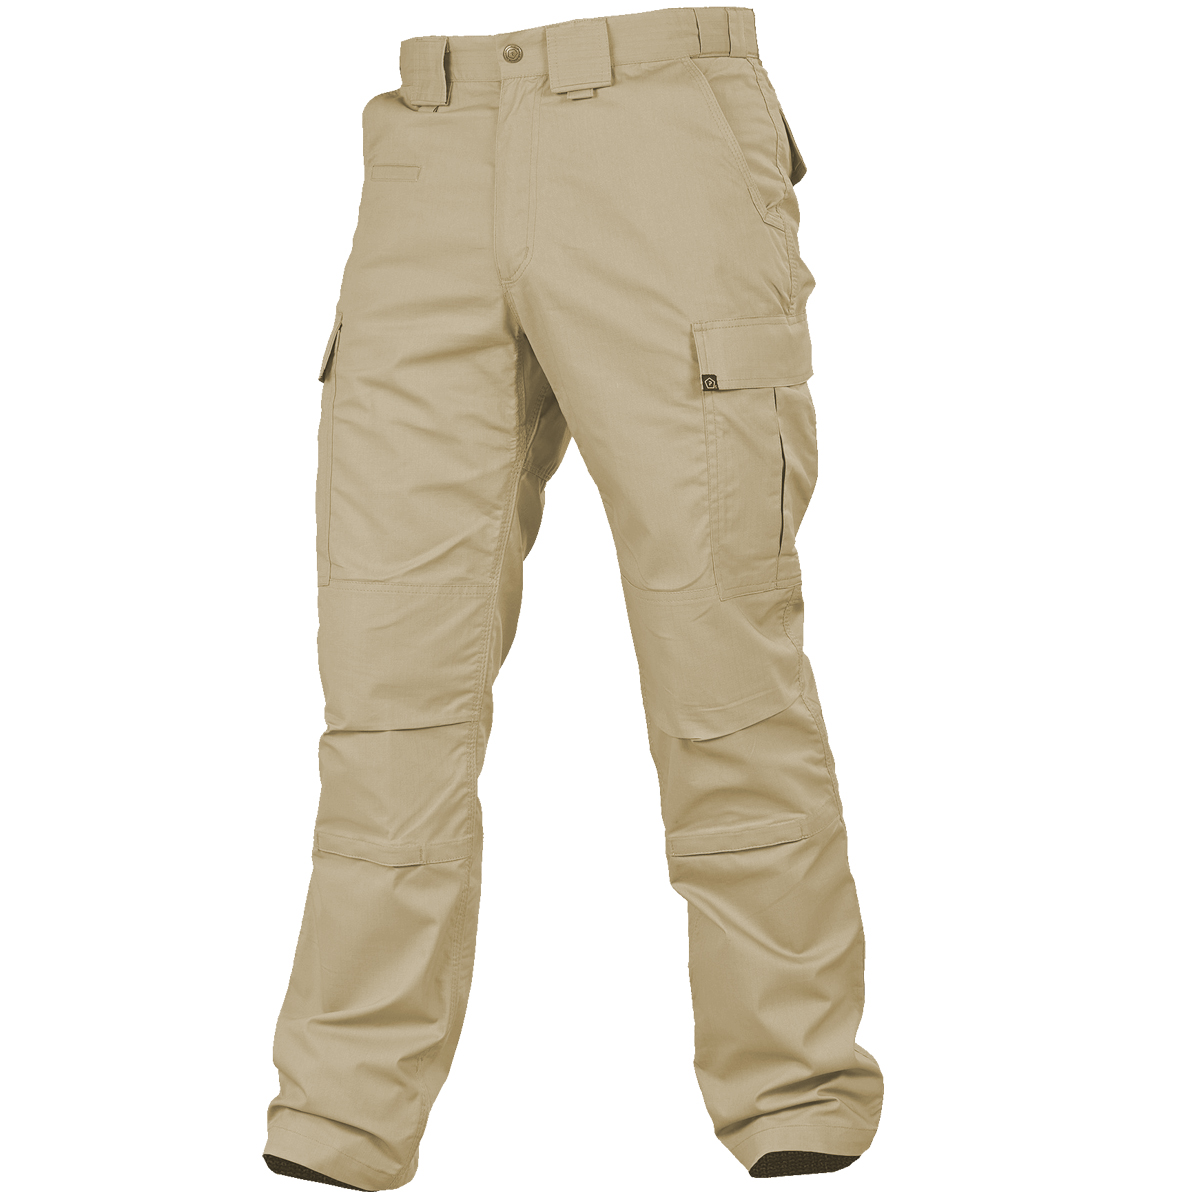 Men's casual cargo trousers. Do off-duty in style with our fabulous range of men's casual trousers. Khaki hit the action combat trousers Save. £ Craghoppers Black Water Repelling Kiwi Zipoff Trousers - Short Save. Was £ Now £ Regatta Black Active packaway overtrouser.